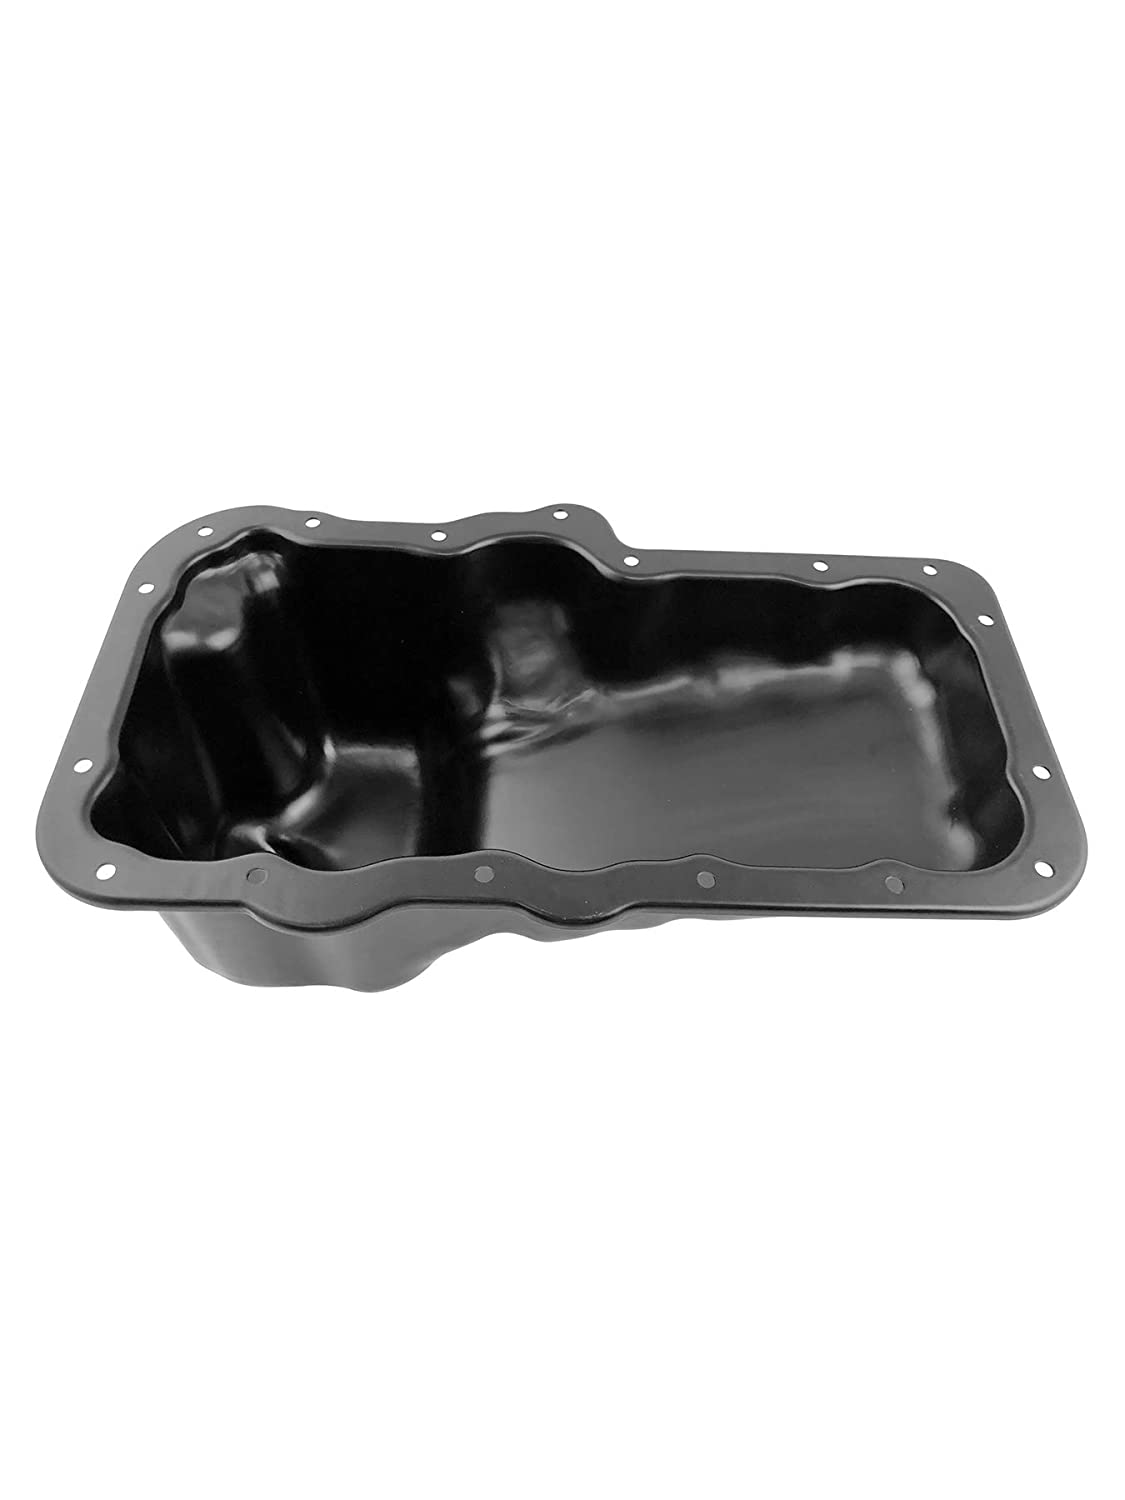 Beasteel 264249 53021779AB 31100937 CRP33A 371080596775 351498823818 282663562555 Steel Engine Oil Pan with Drain Plug for 04-12 Dodge Dakota Nitro Ram 1500 Jeep Liberty